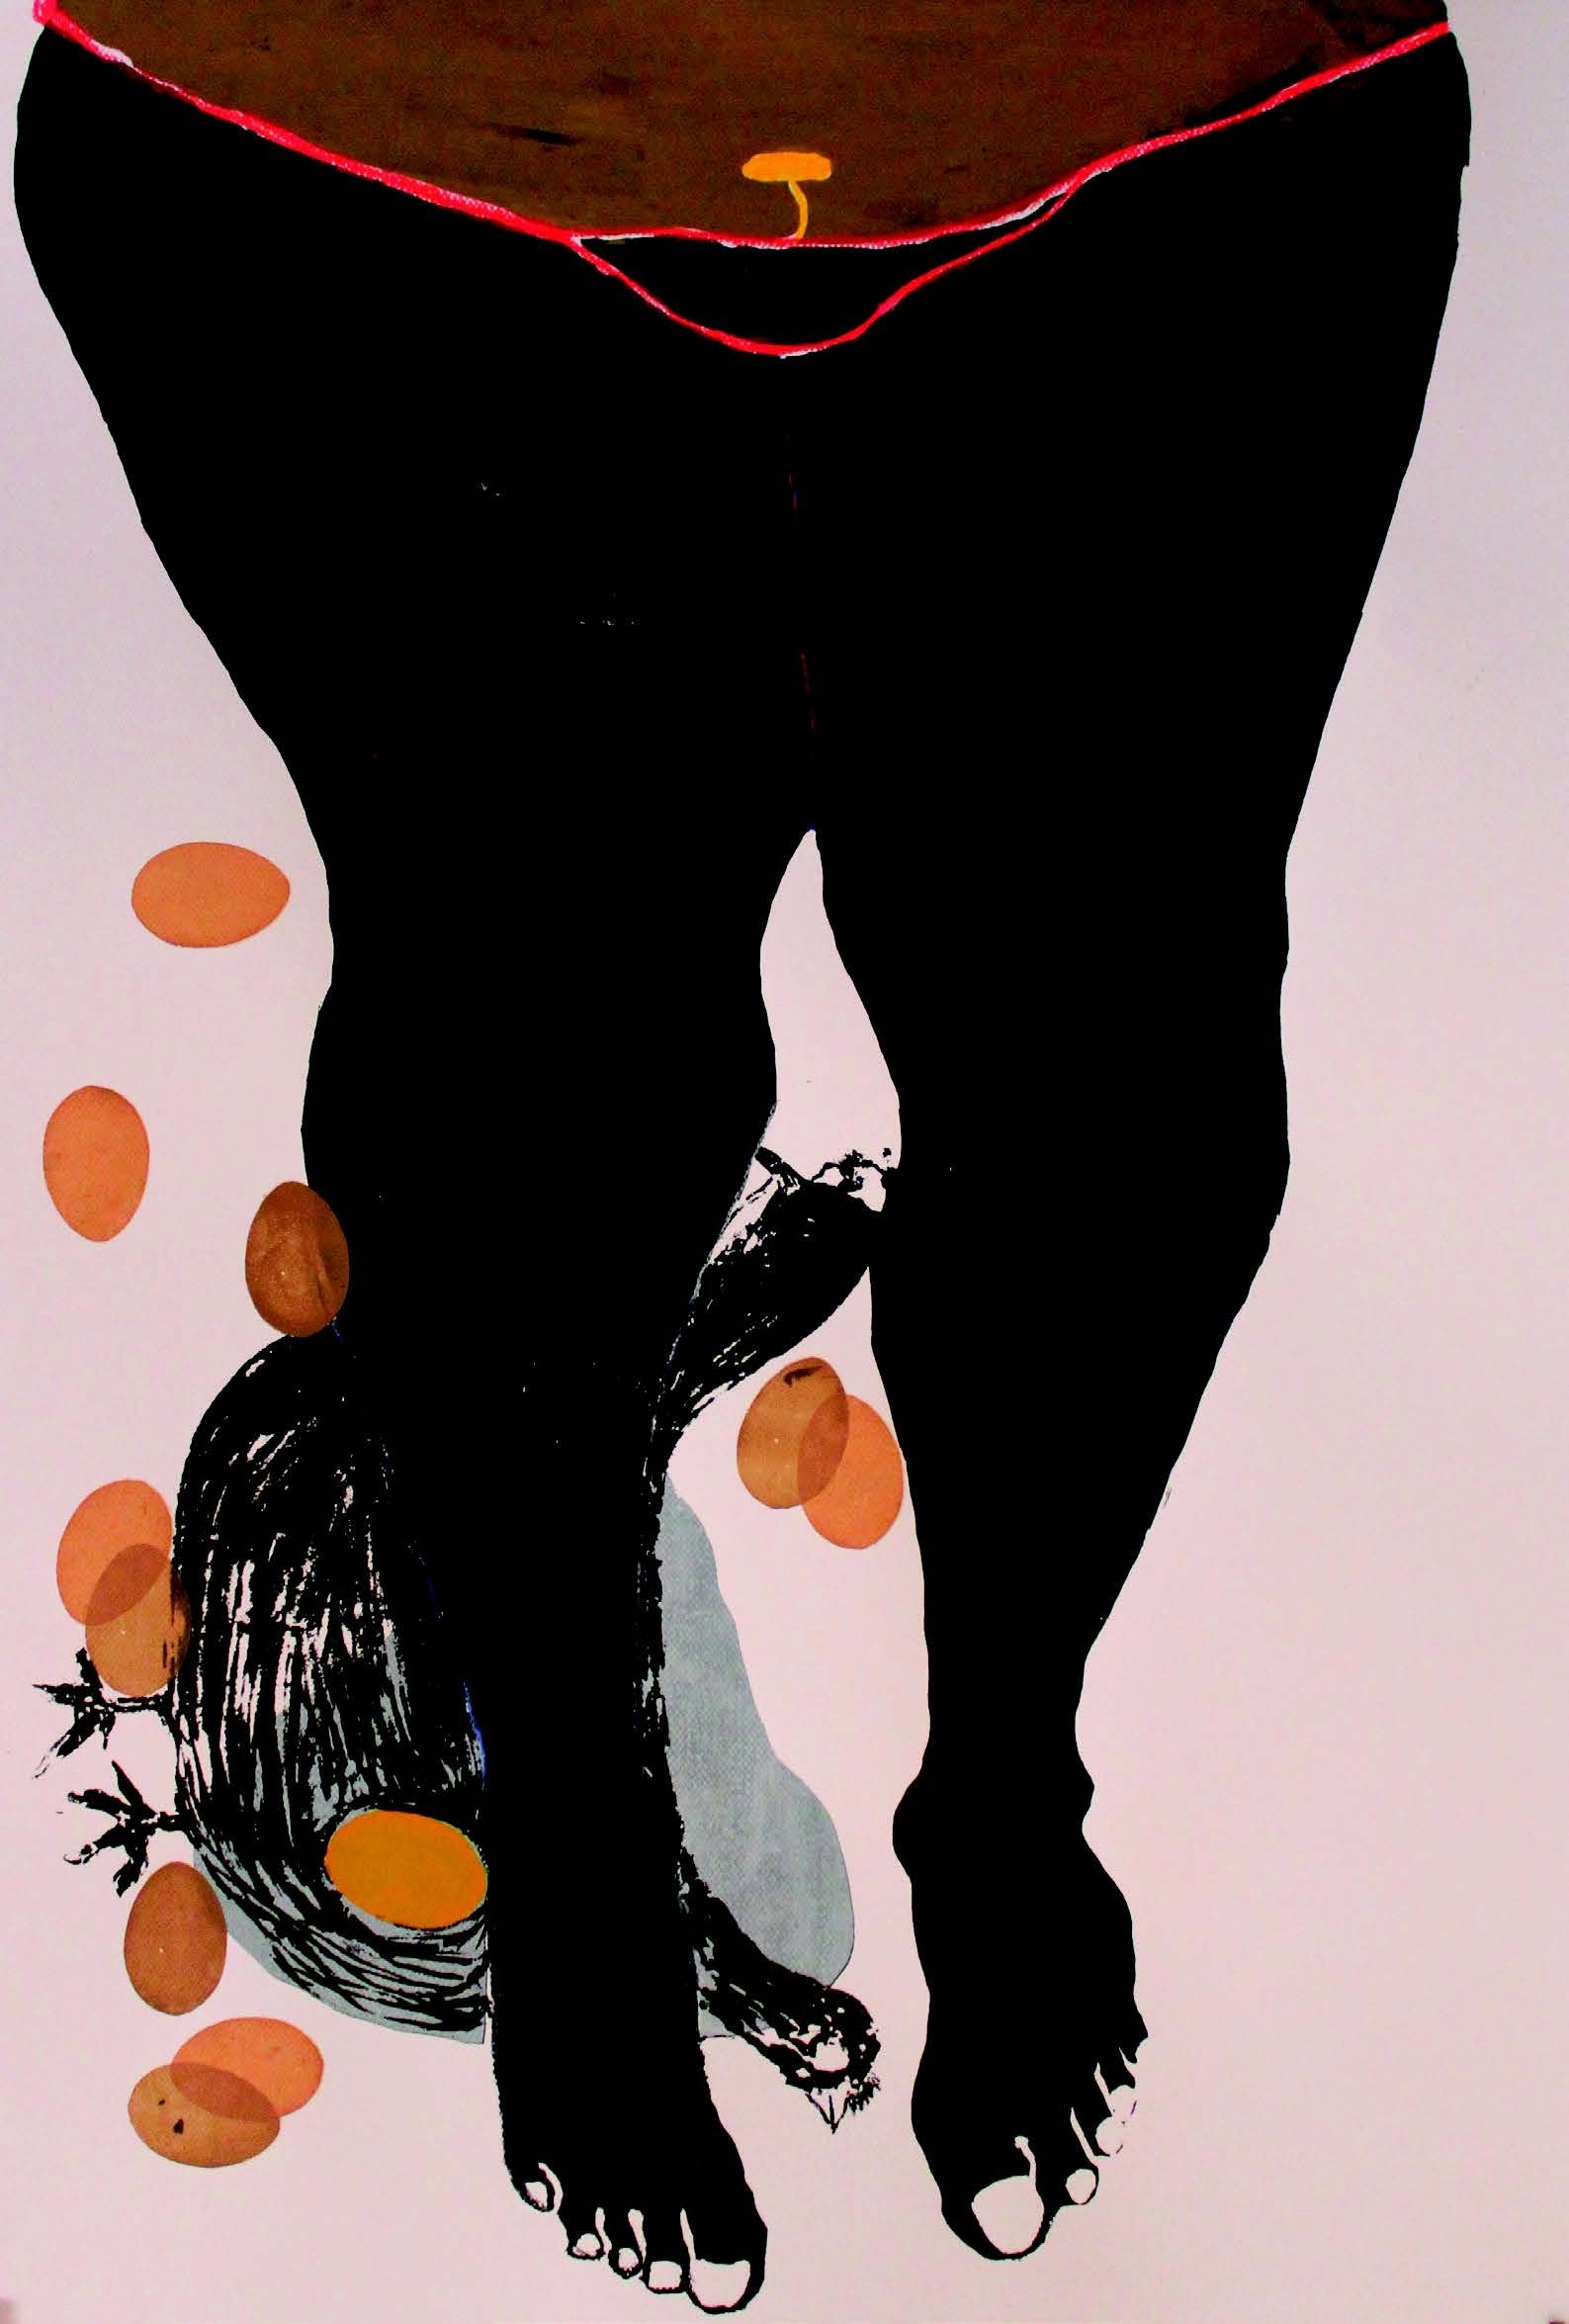 Virginia Chihota, Kurera Hupenyu Mukusaziva, 2013 Serigraph and drawing on paper 100 x 70cm